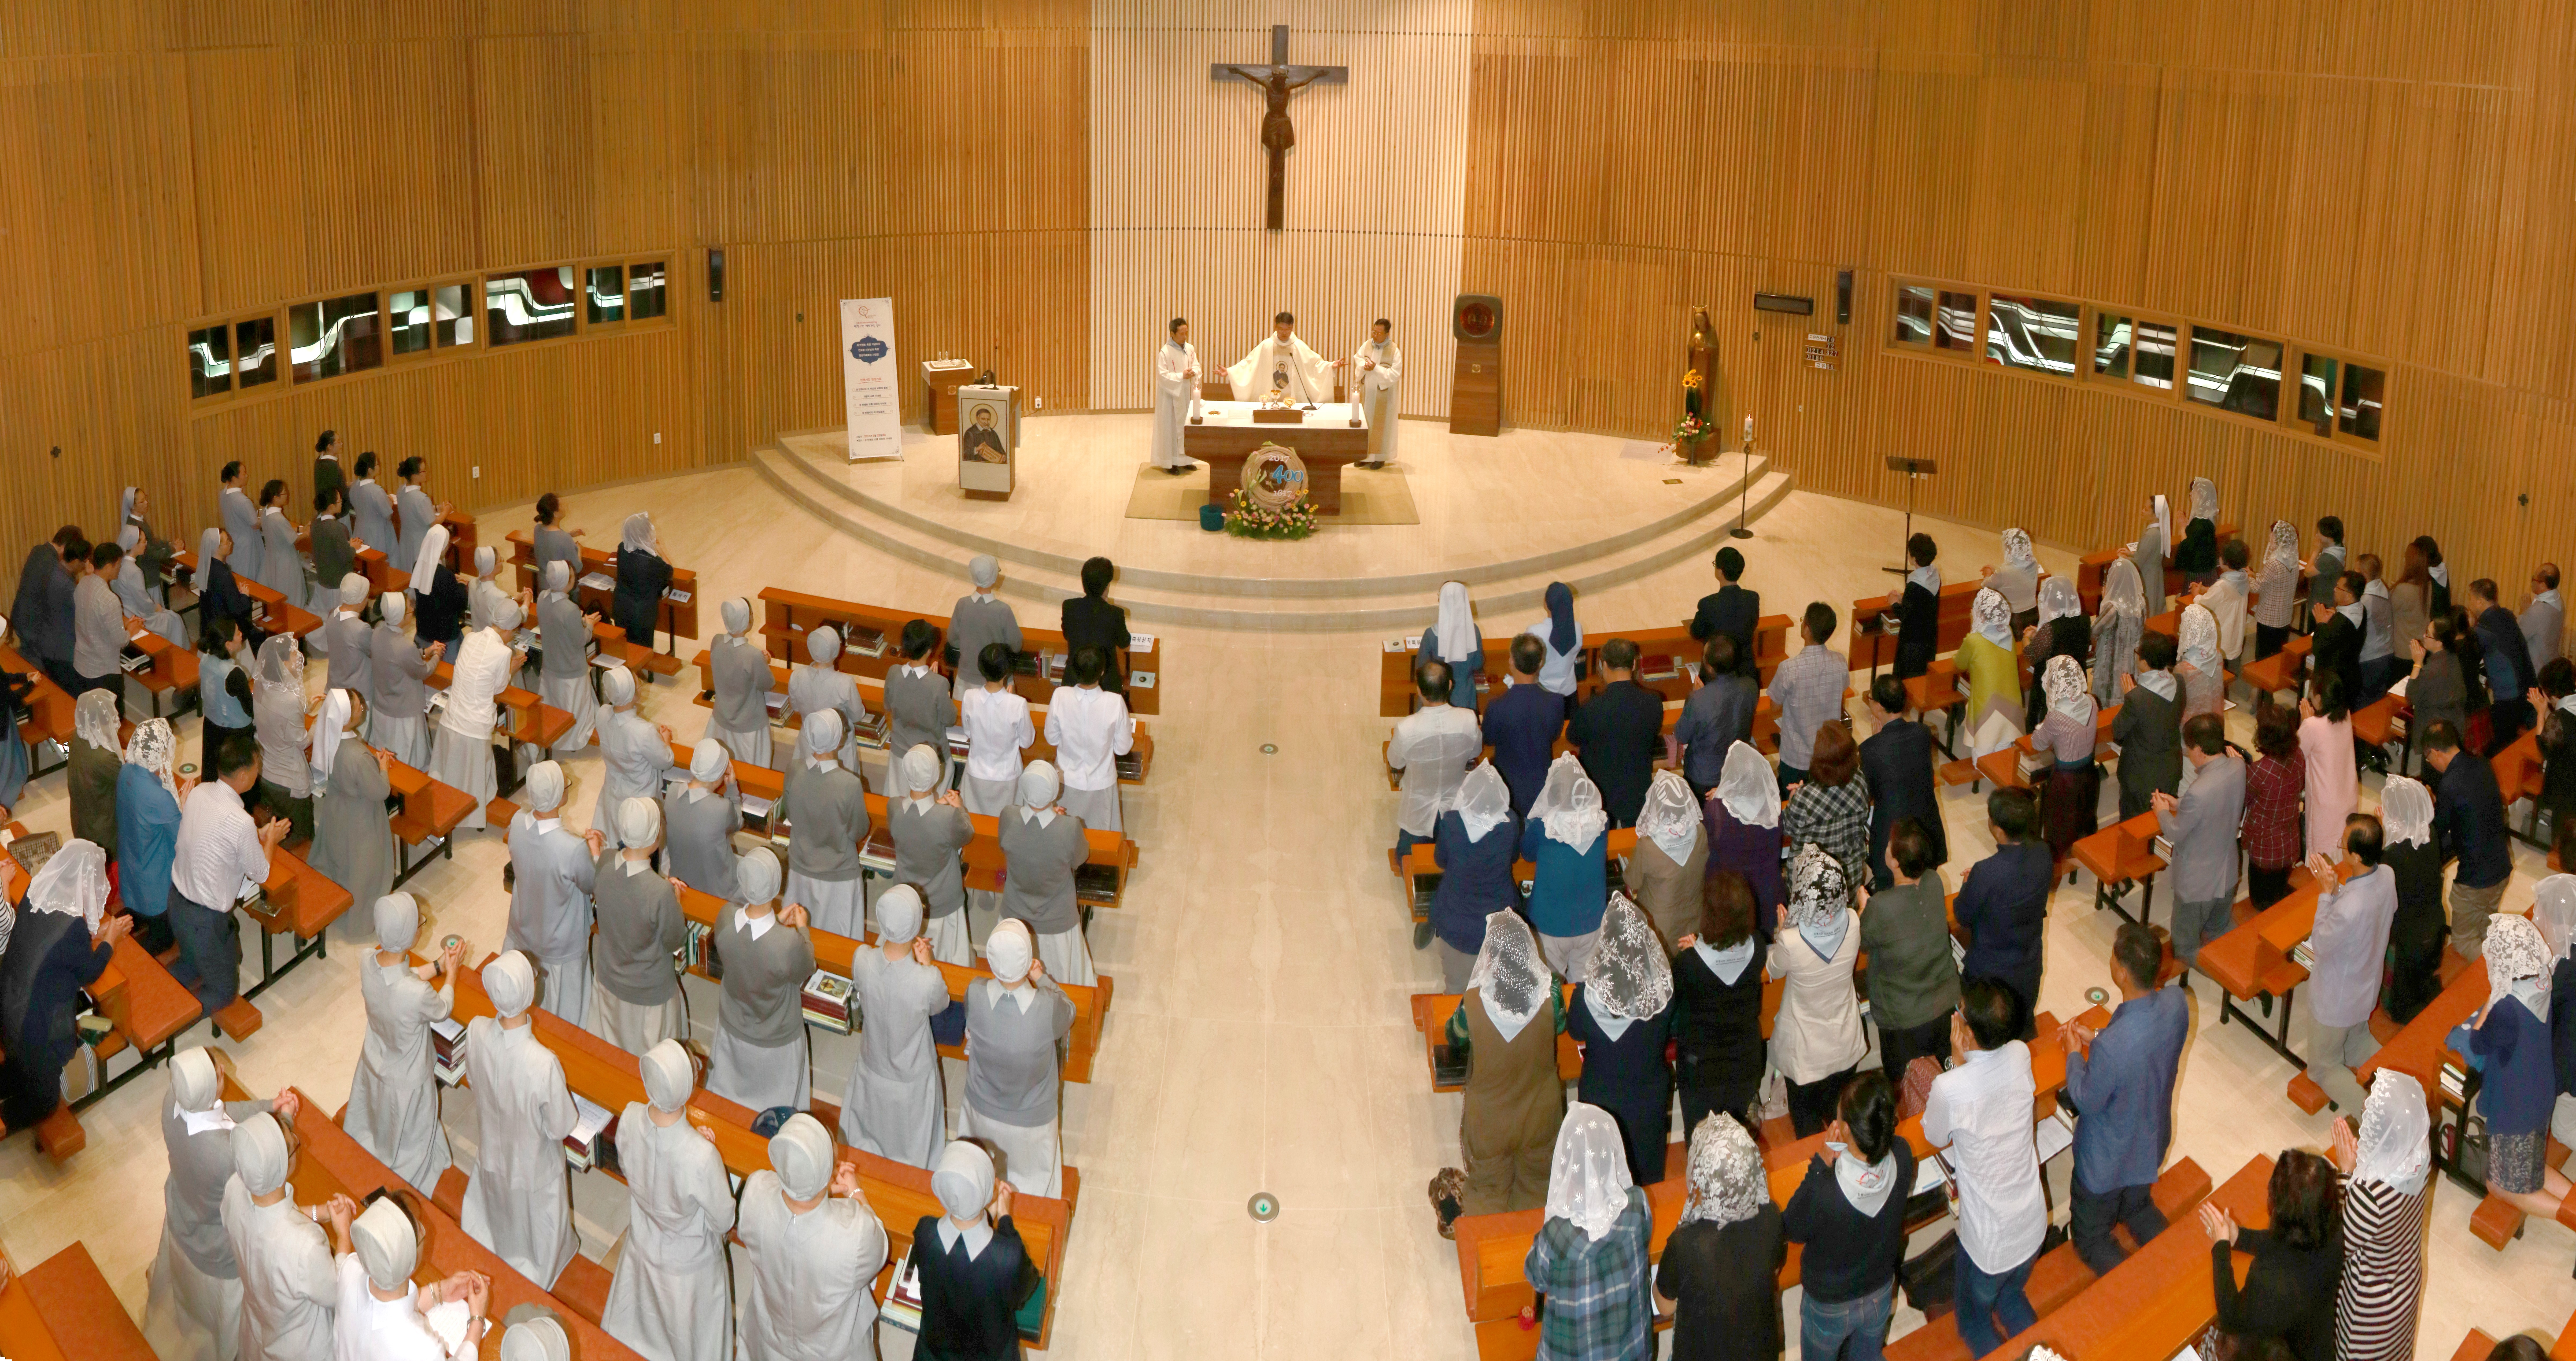 Birth of a new Vincentian Family Council in Korea